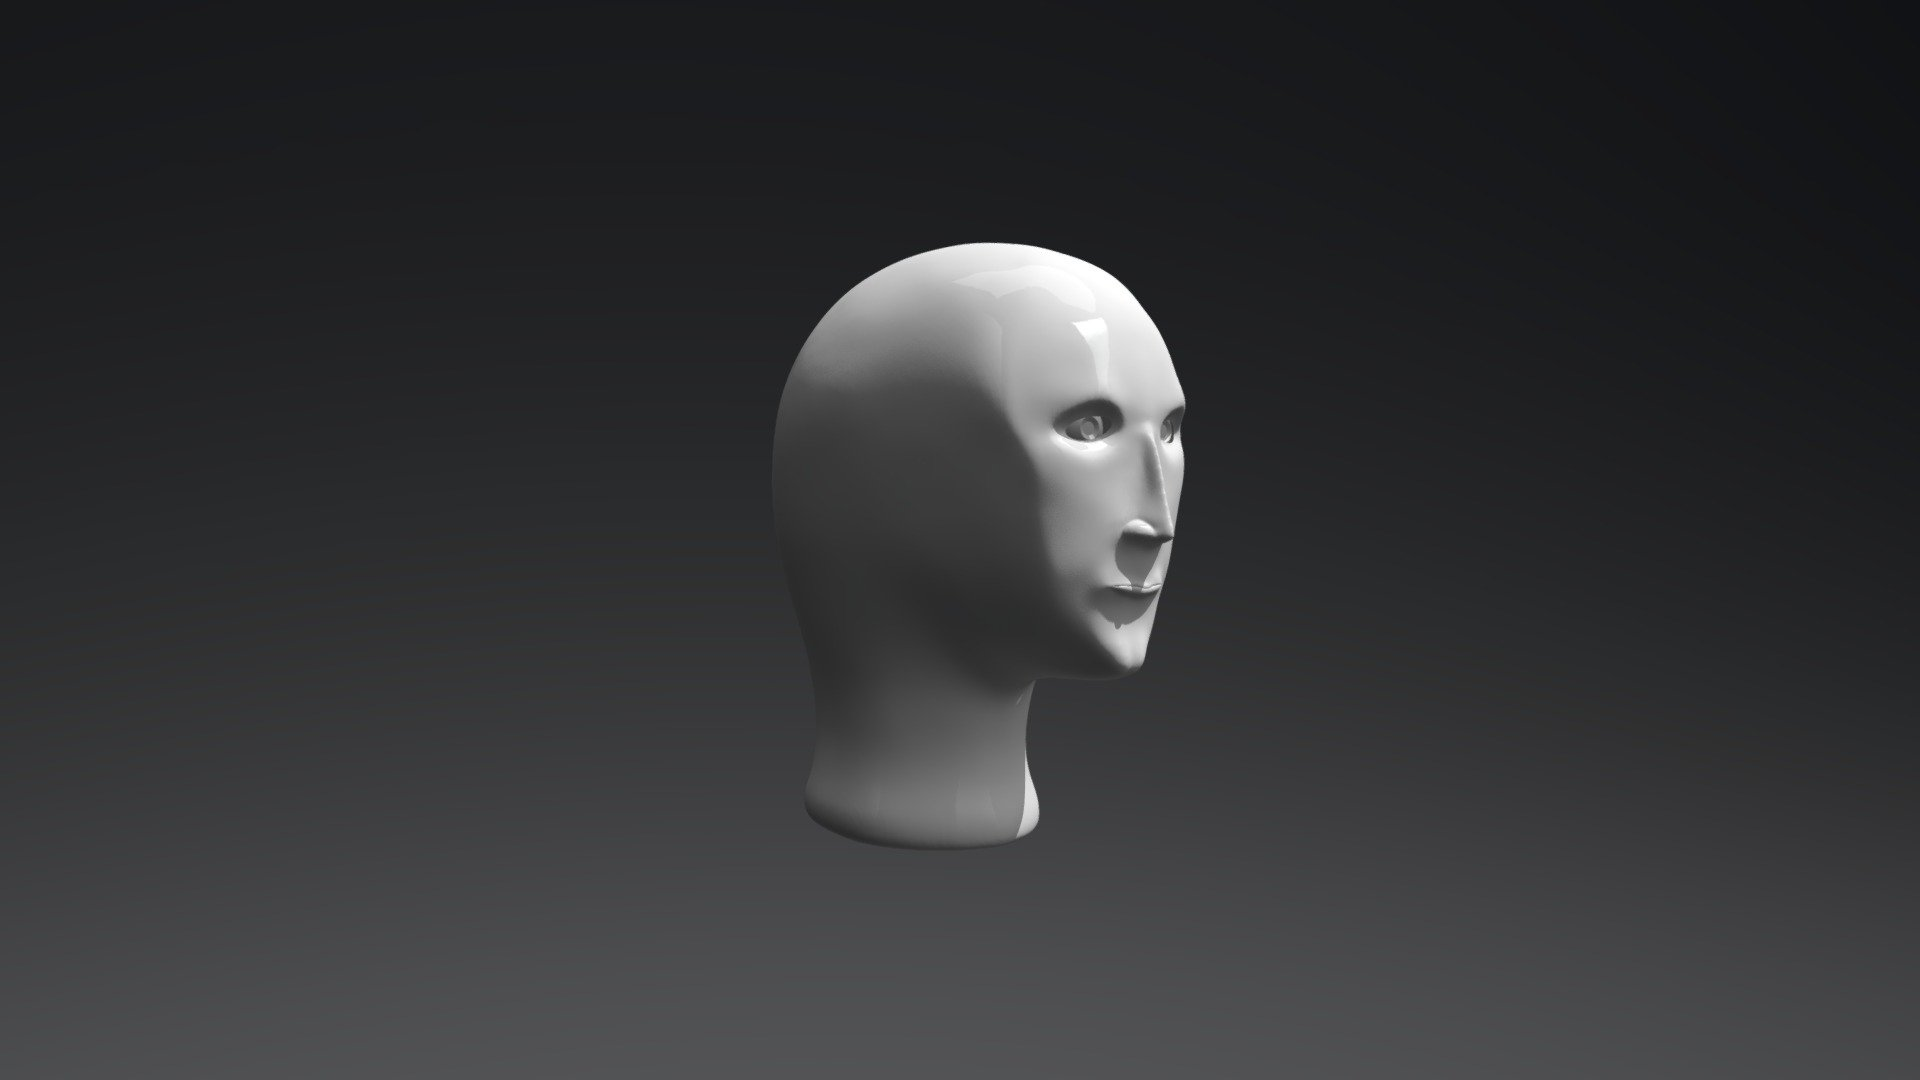 meme head 3d succ mr fresh models templates sketchfab special wurds